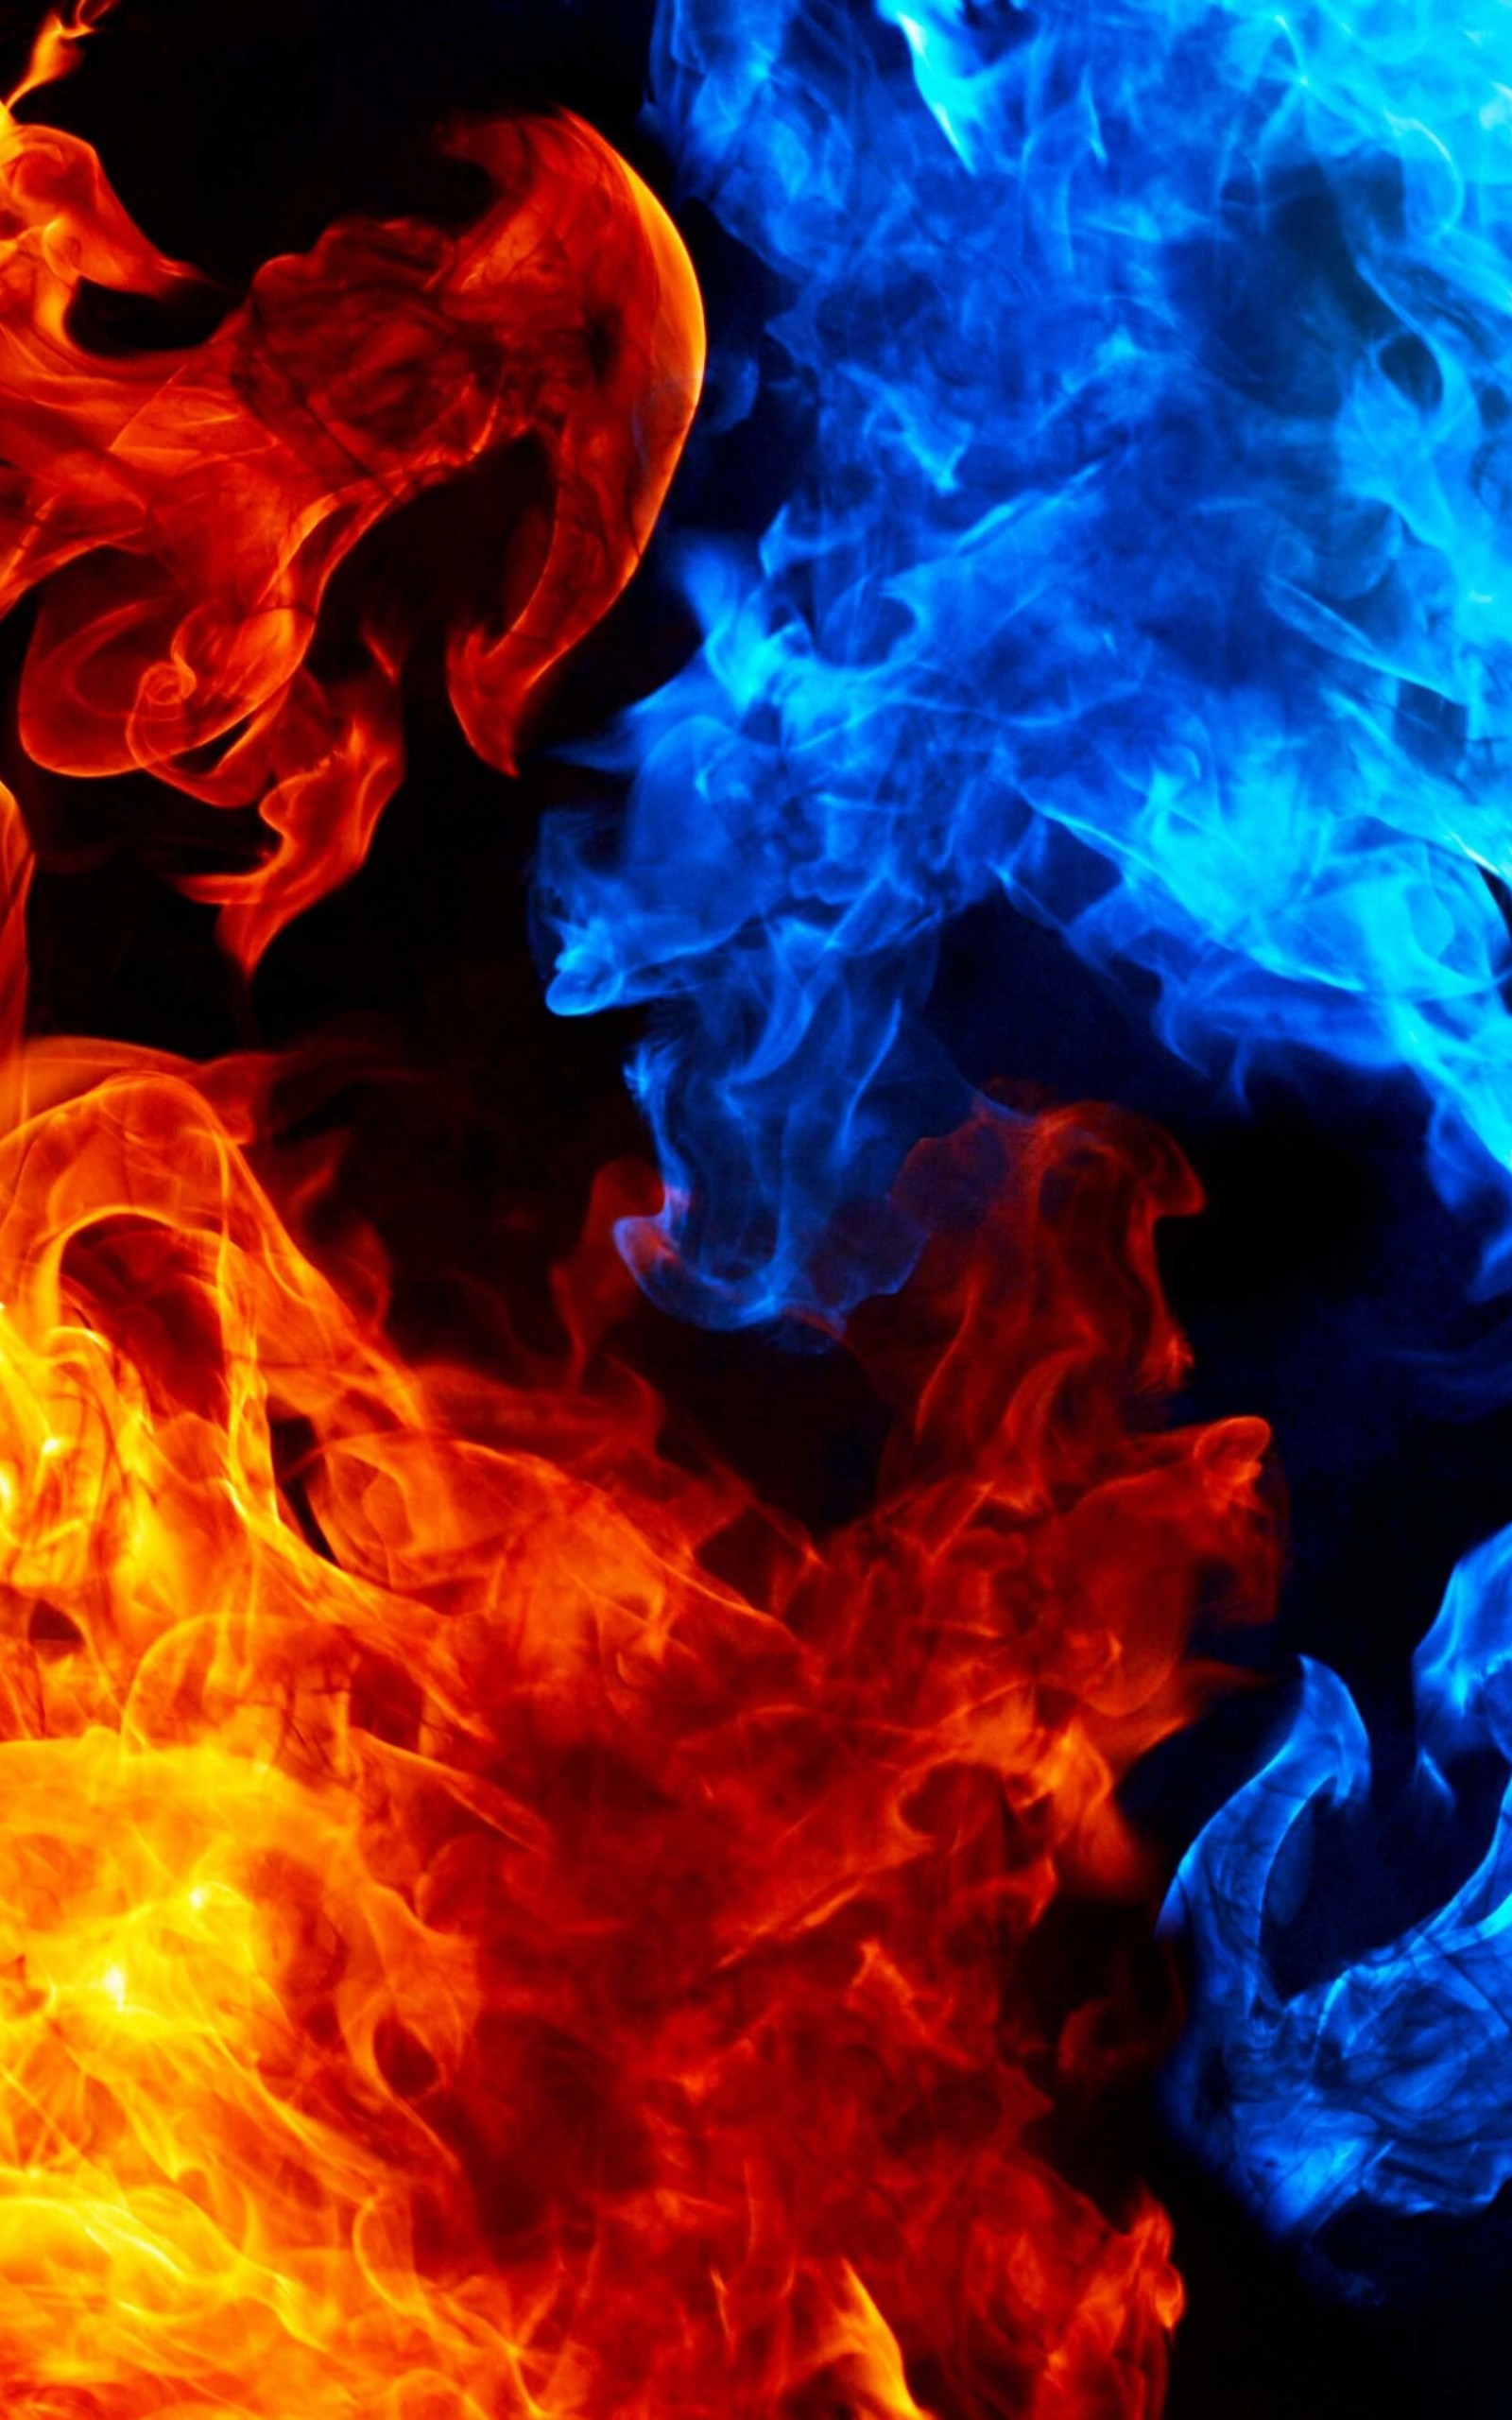 Blue And Red Fire Wallpaper for Amazon Kindle Fire HDX 8.9